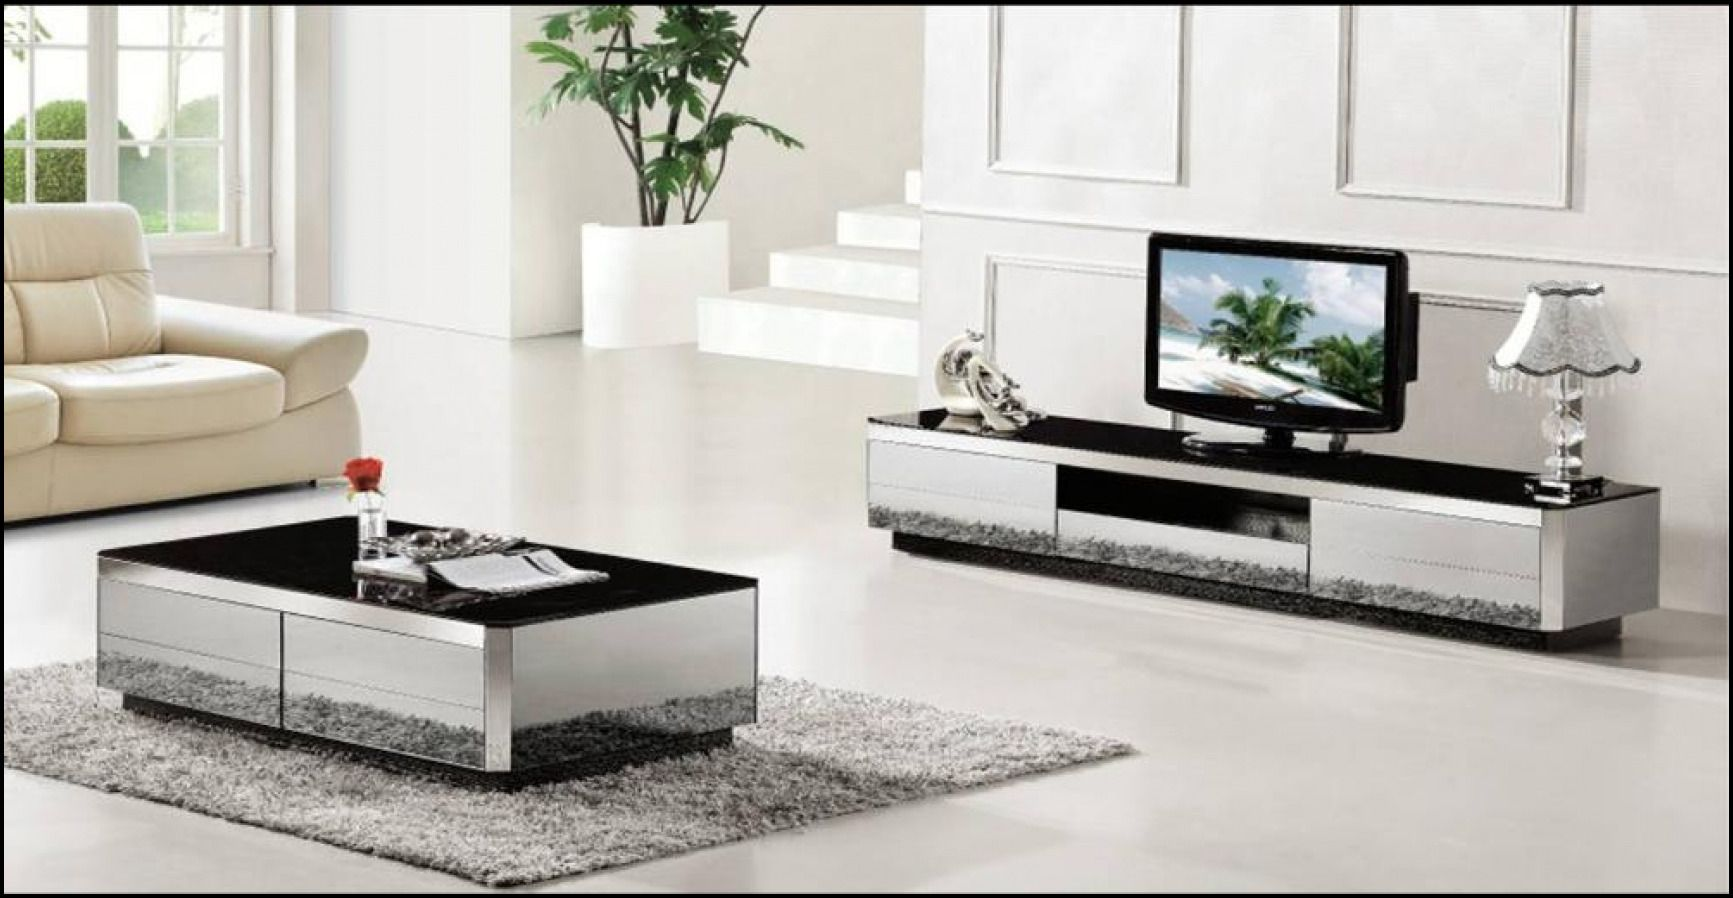 Tv Stand And Coffee Table Setblack Tv Stand And Coffee Table Set - Modern tv stand and coffee table set